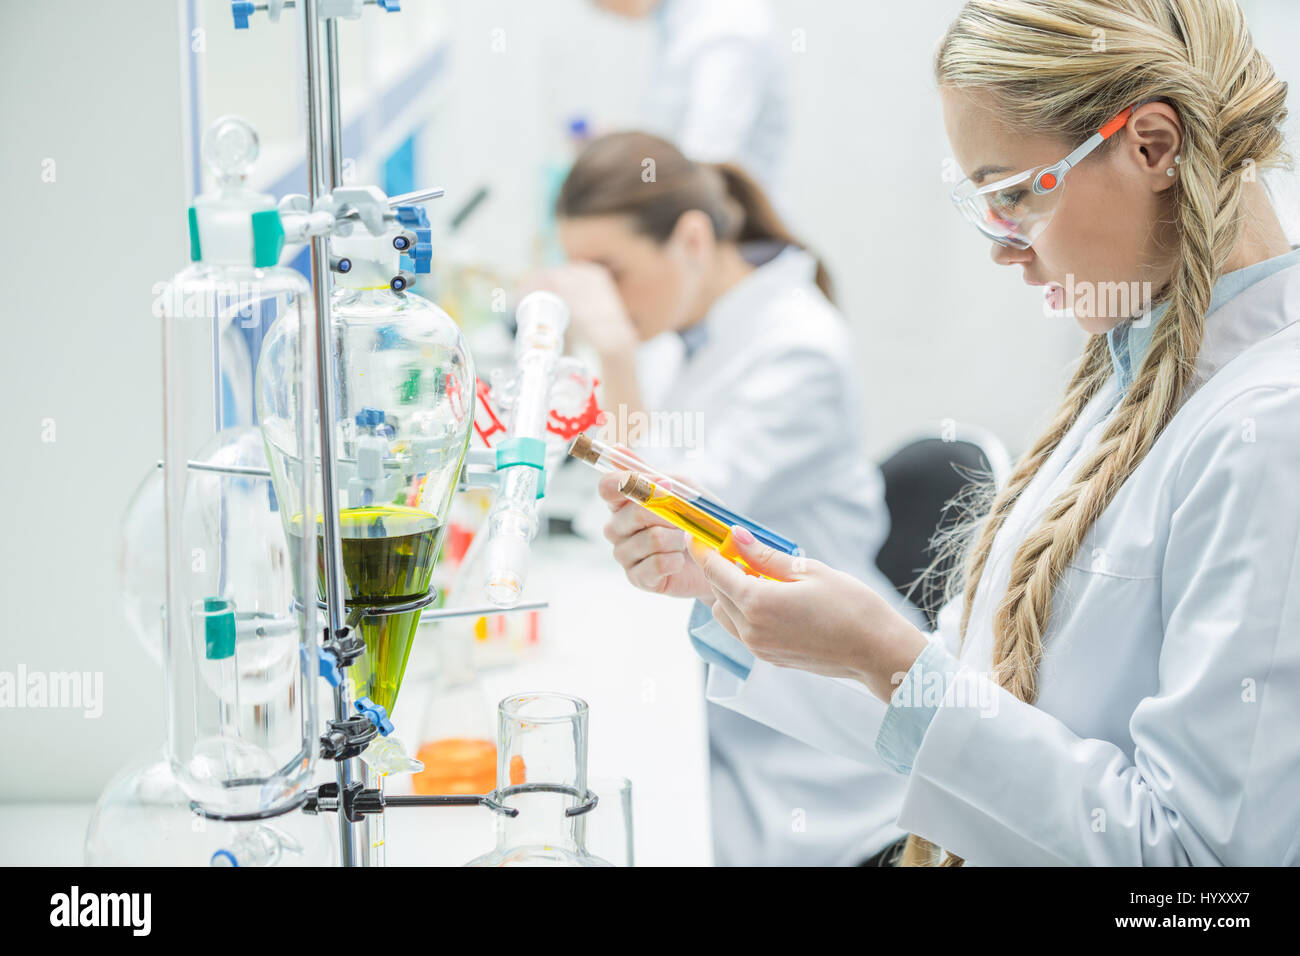 Young female scientist in protective glasses and lab coat looking at test tubes in laboratory Stock Photo